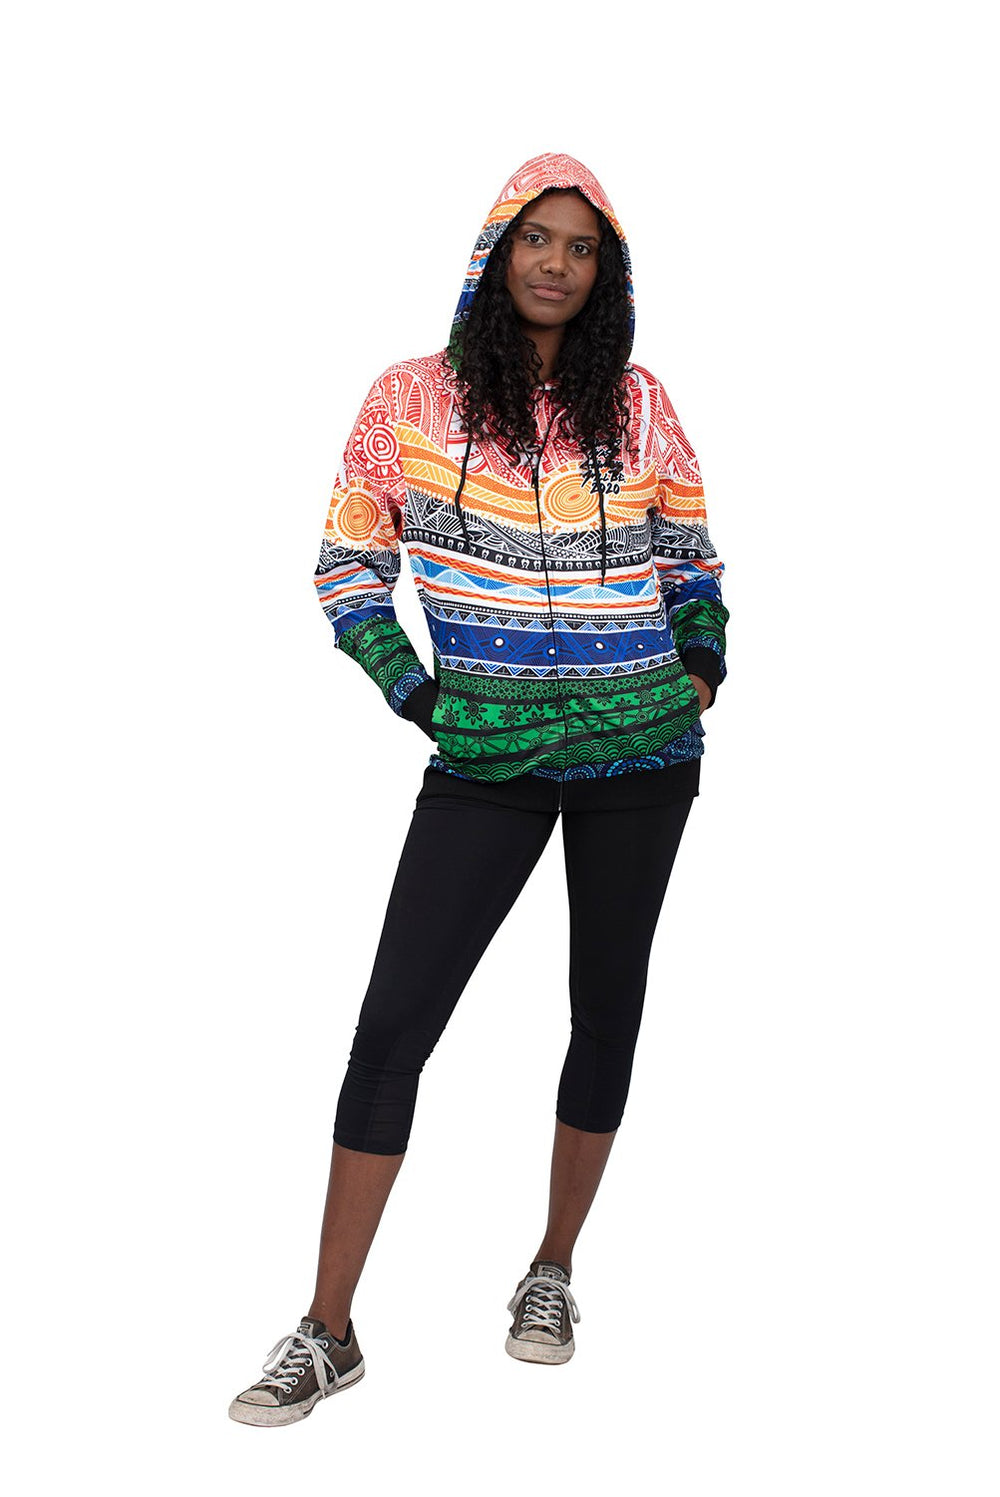 Spiritual Country Women's Hoodies - NAIDOC 2020 - BW Tribal